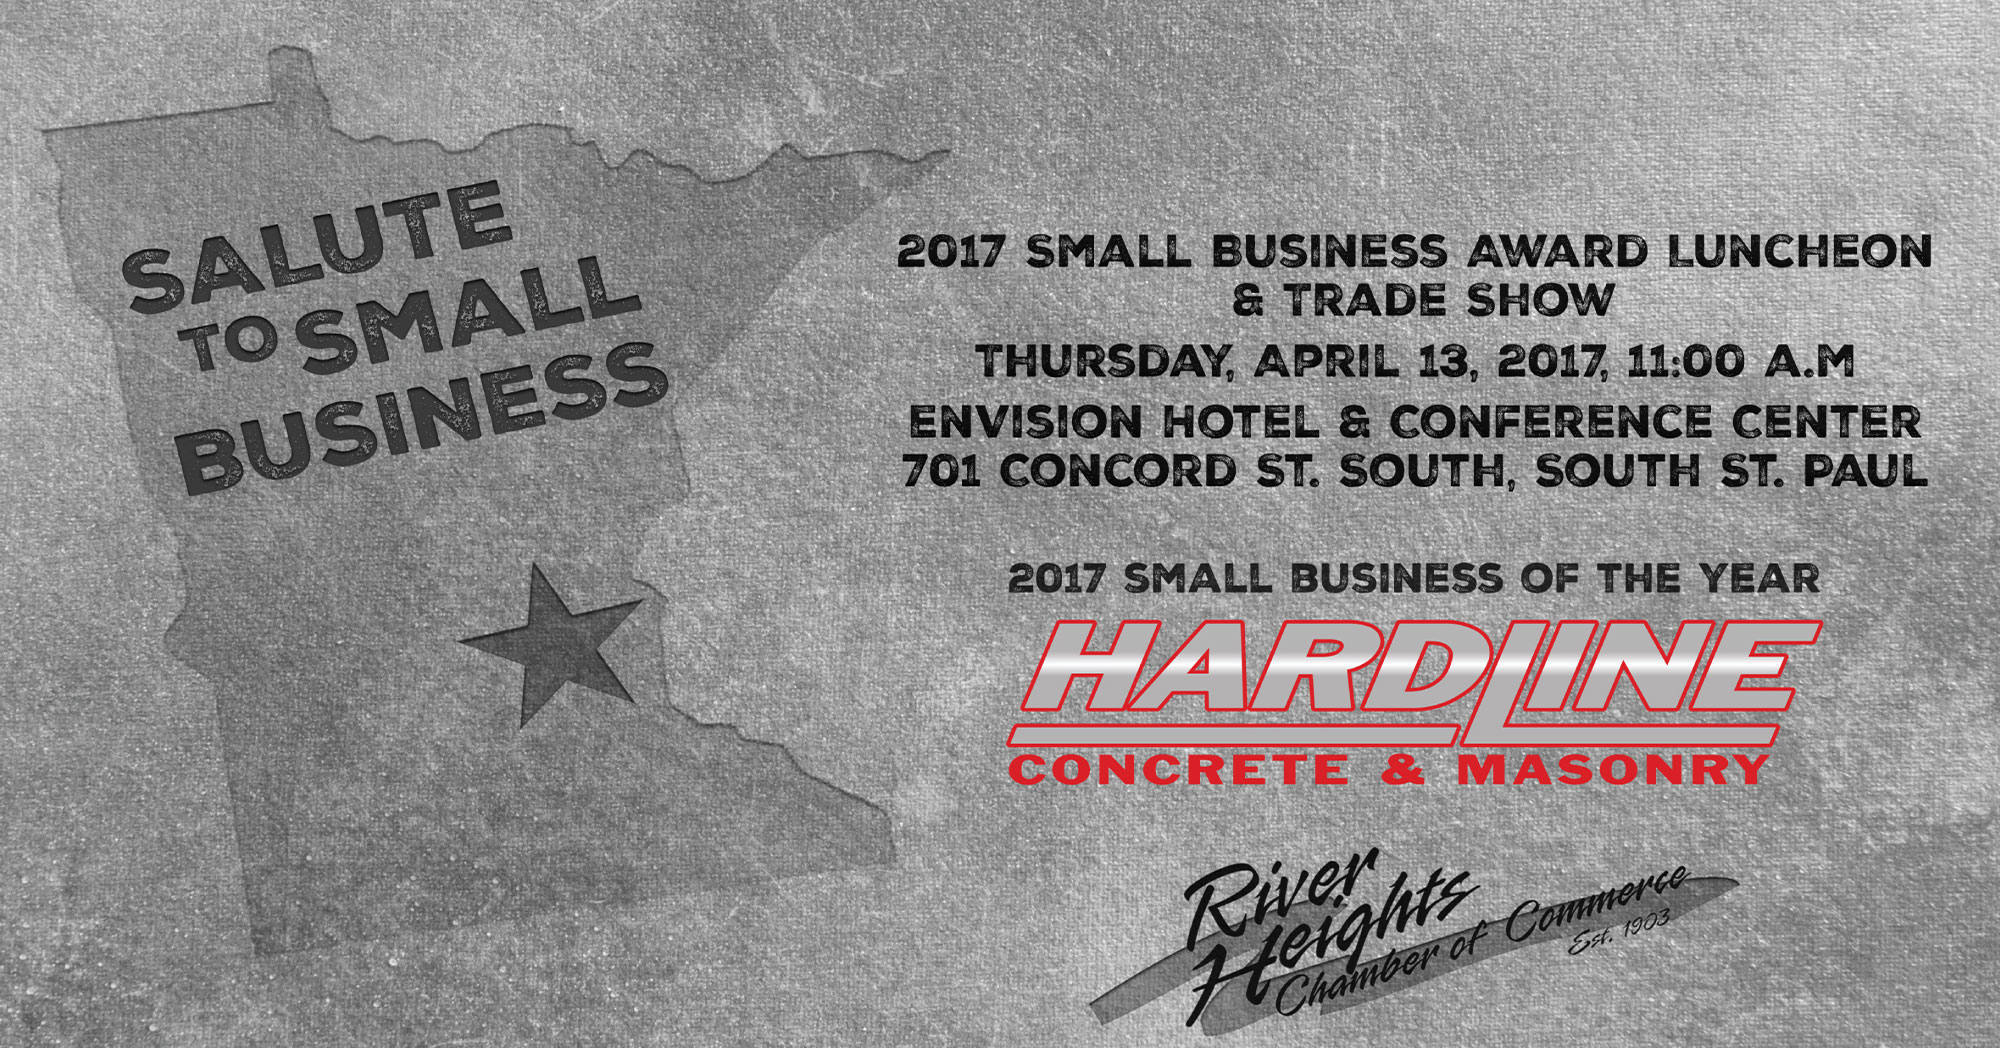 hardline concrete & masonry honored with 2017 small business of